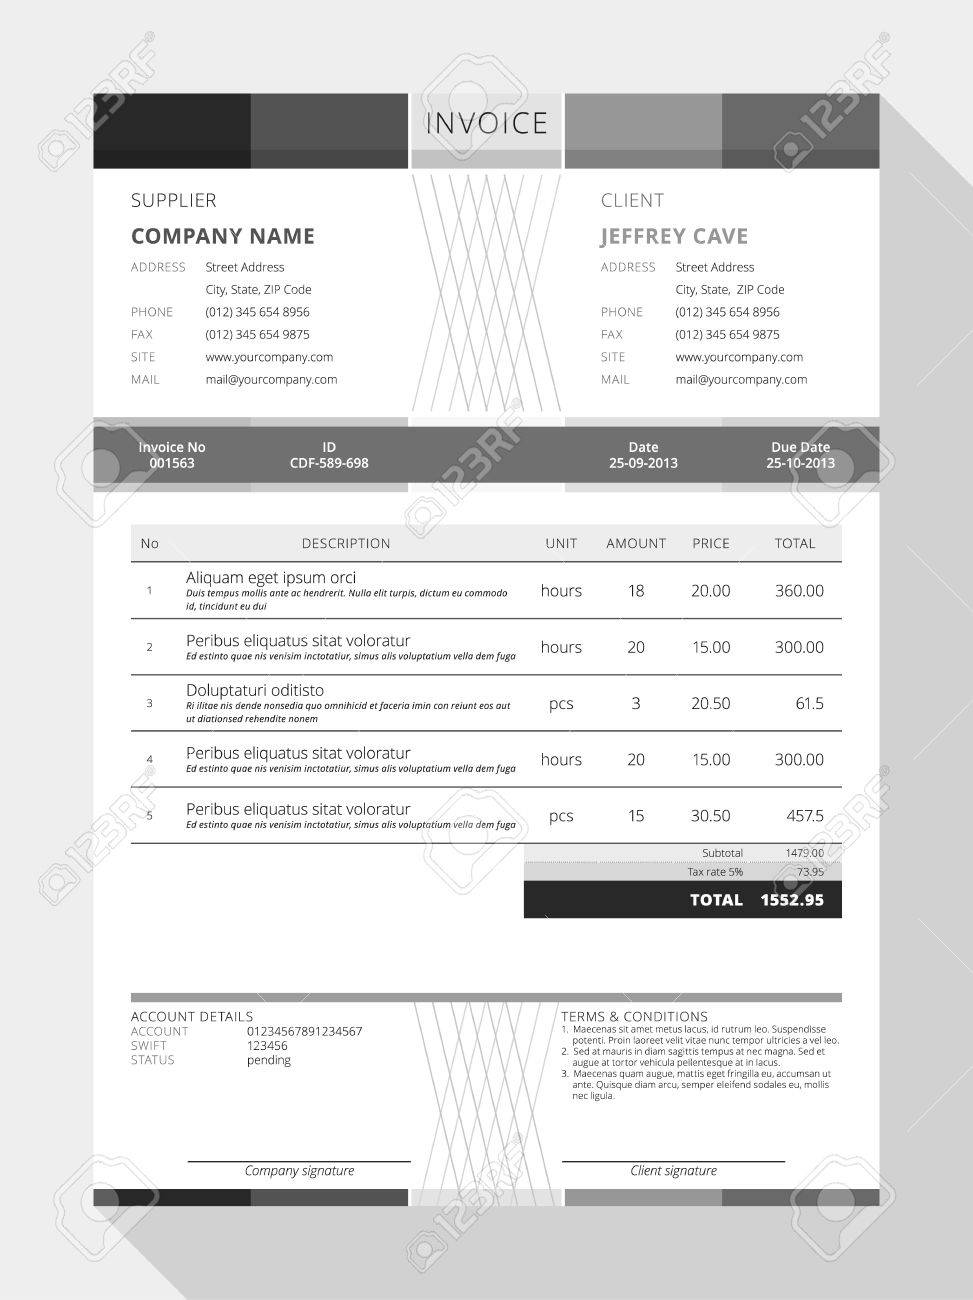 Ebitus  Prepossessing Design An Invoice  Professional Graphic Design Invoice  With Lovable Vector Customizable Invoice Form Template Design Vector   Design An Invoice With Astounding Photography Invoice Template Word Also Sample Invoice Template Excel In Addition Invoice Payments And Ebay Pay Invoice As Well As Adams Invoice Book Additionally How To Process Invoices From Happytomco With Ebitus  Lovable Design An Invoice  Professional Graphic Design Invoice  With Astounding Vector Customizable Invoice Form Template Design Vector   Design An Invoice And Prepossessing Photography Invoice Template Word Also Sample Invoice Template Excel In Addition Invoice Payments From Happytomco